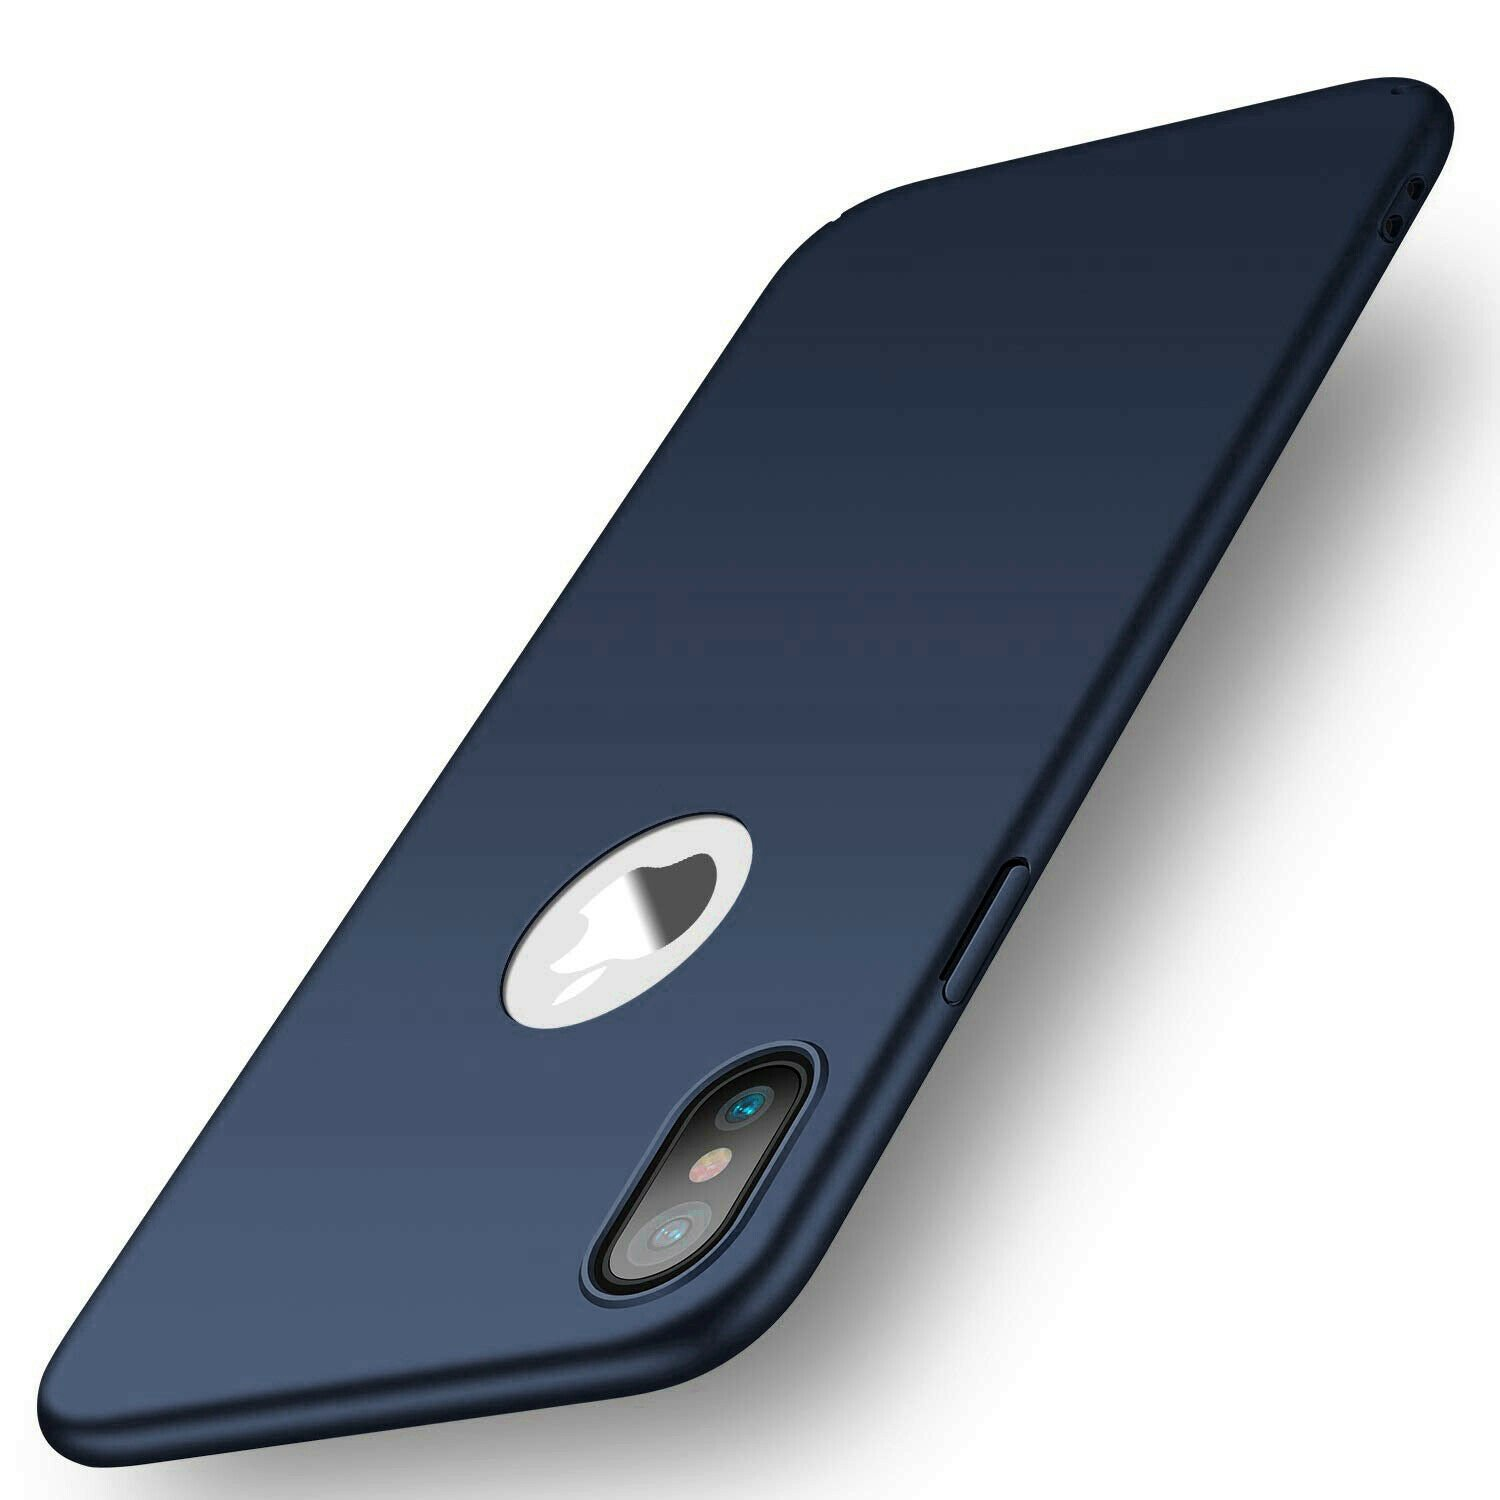 For-iPhone-X-XR-XS-Max-Matte-Case-Shockproof-Ultra-Thin-Slim-Hard-Cover thumbnail 19